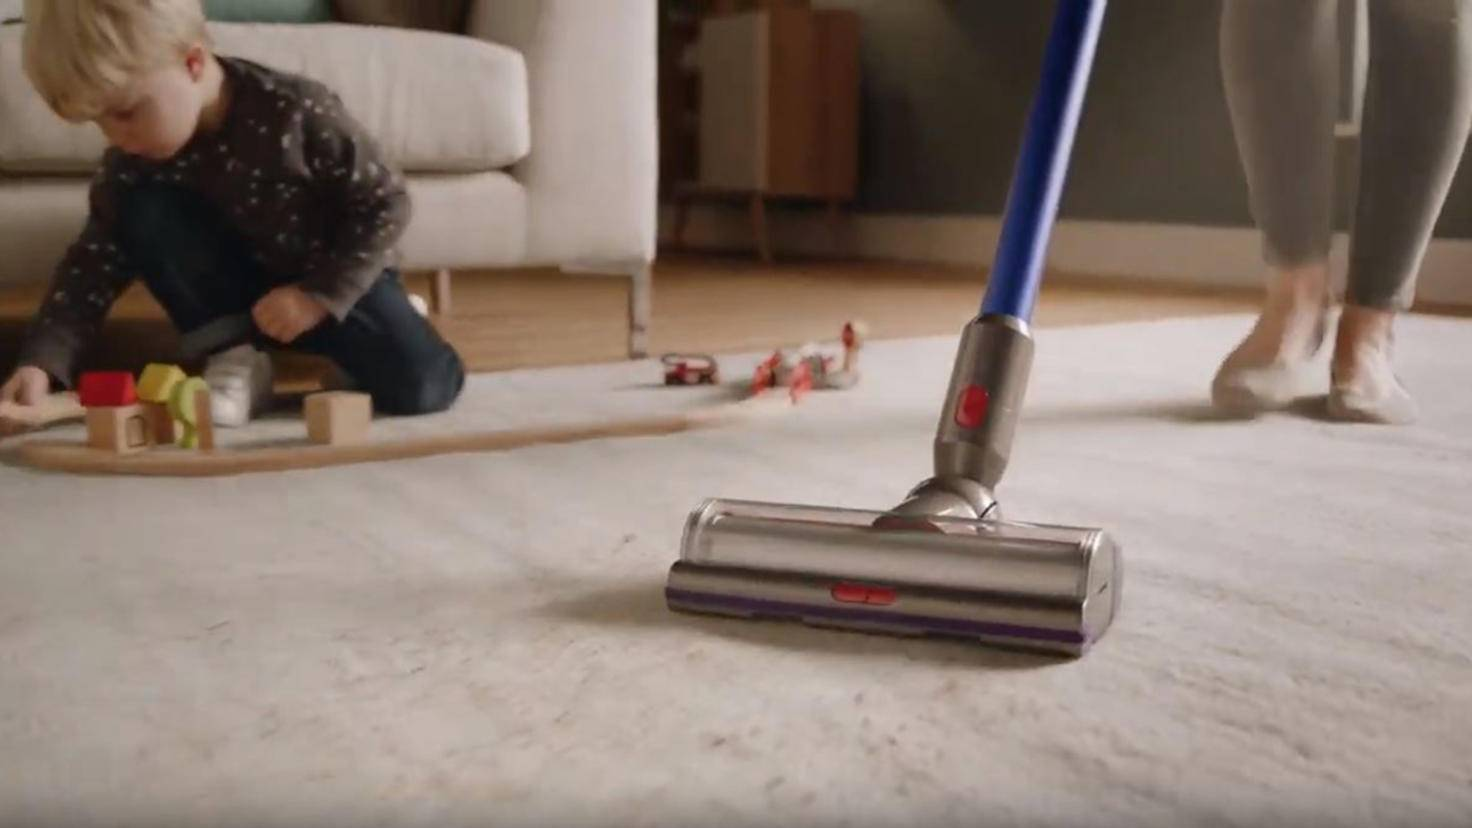 Dyson V11 Absolute Staubsauger